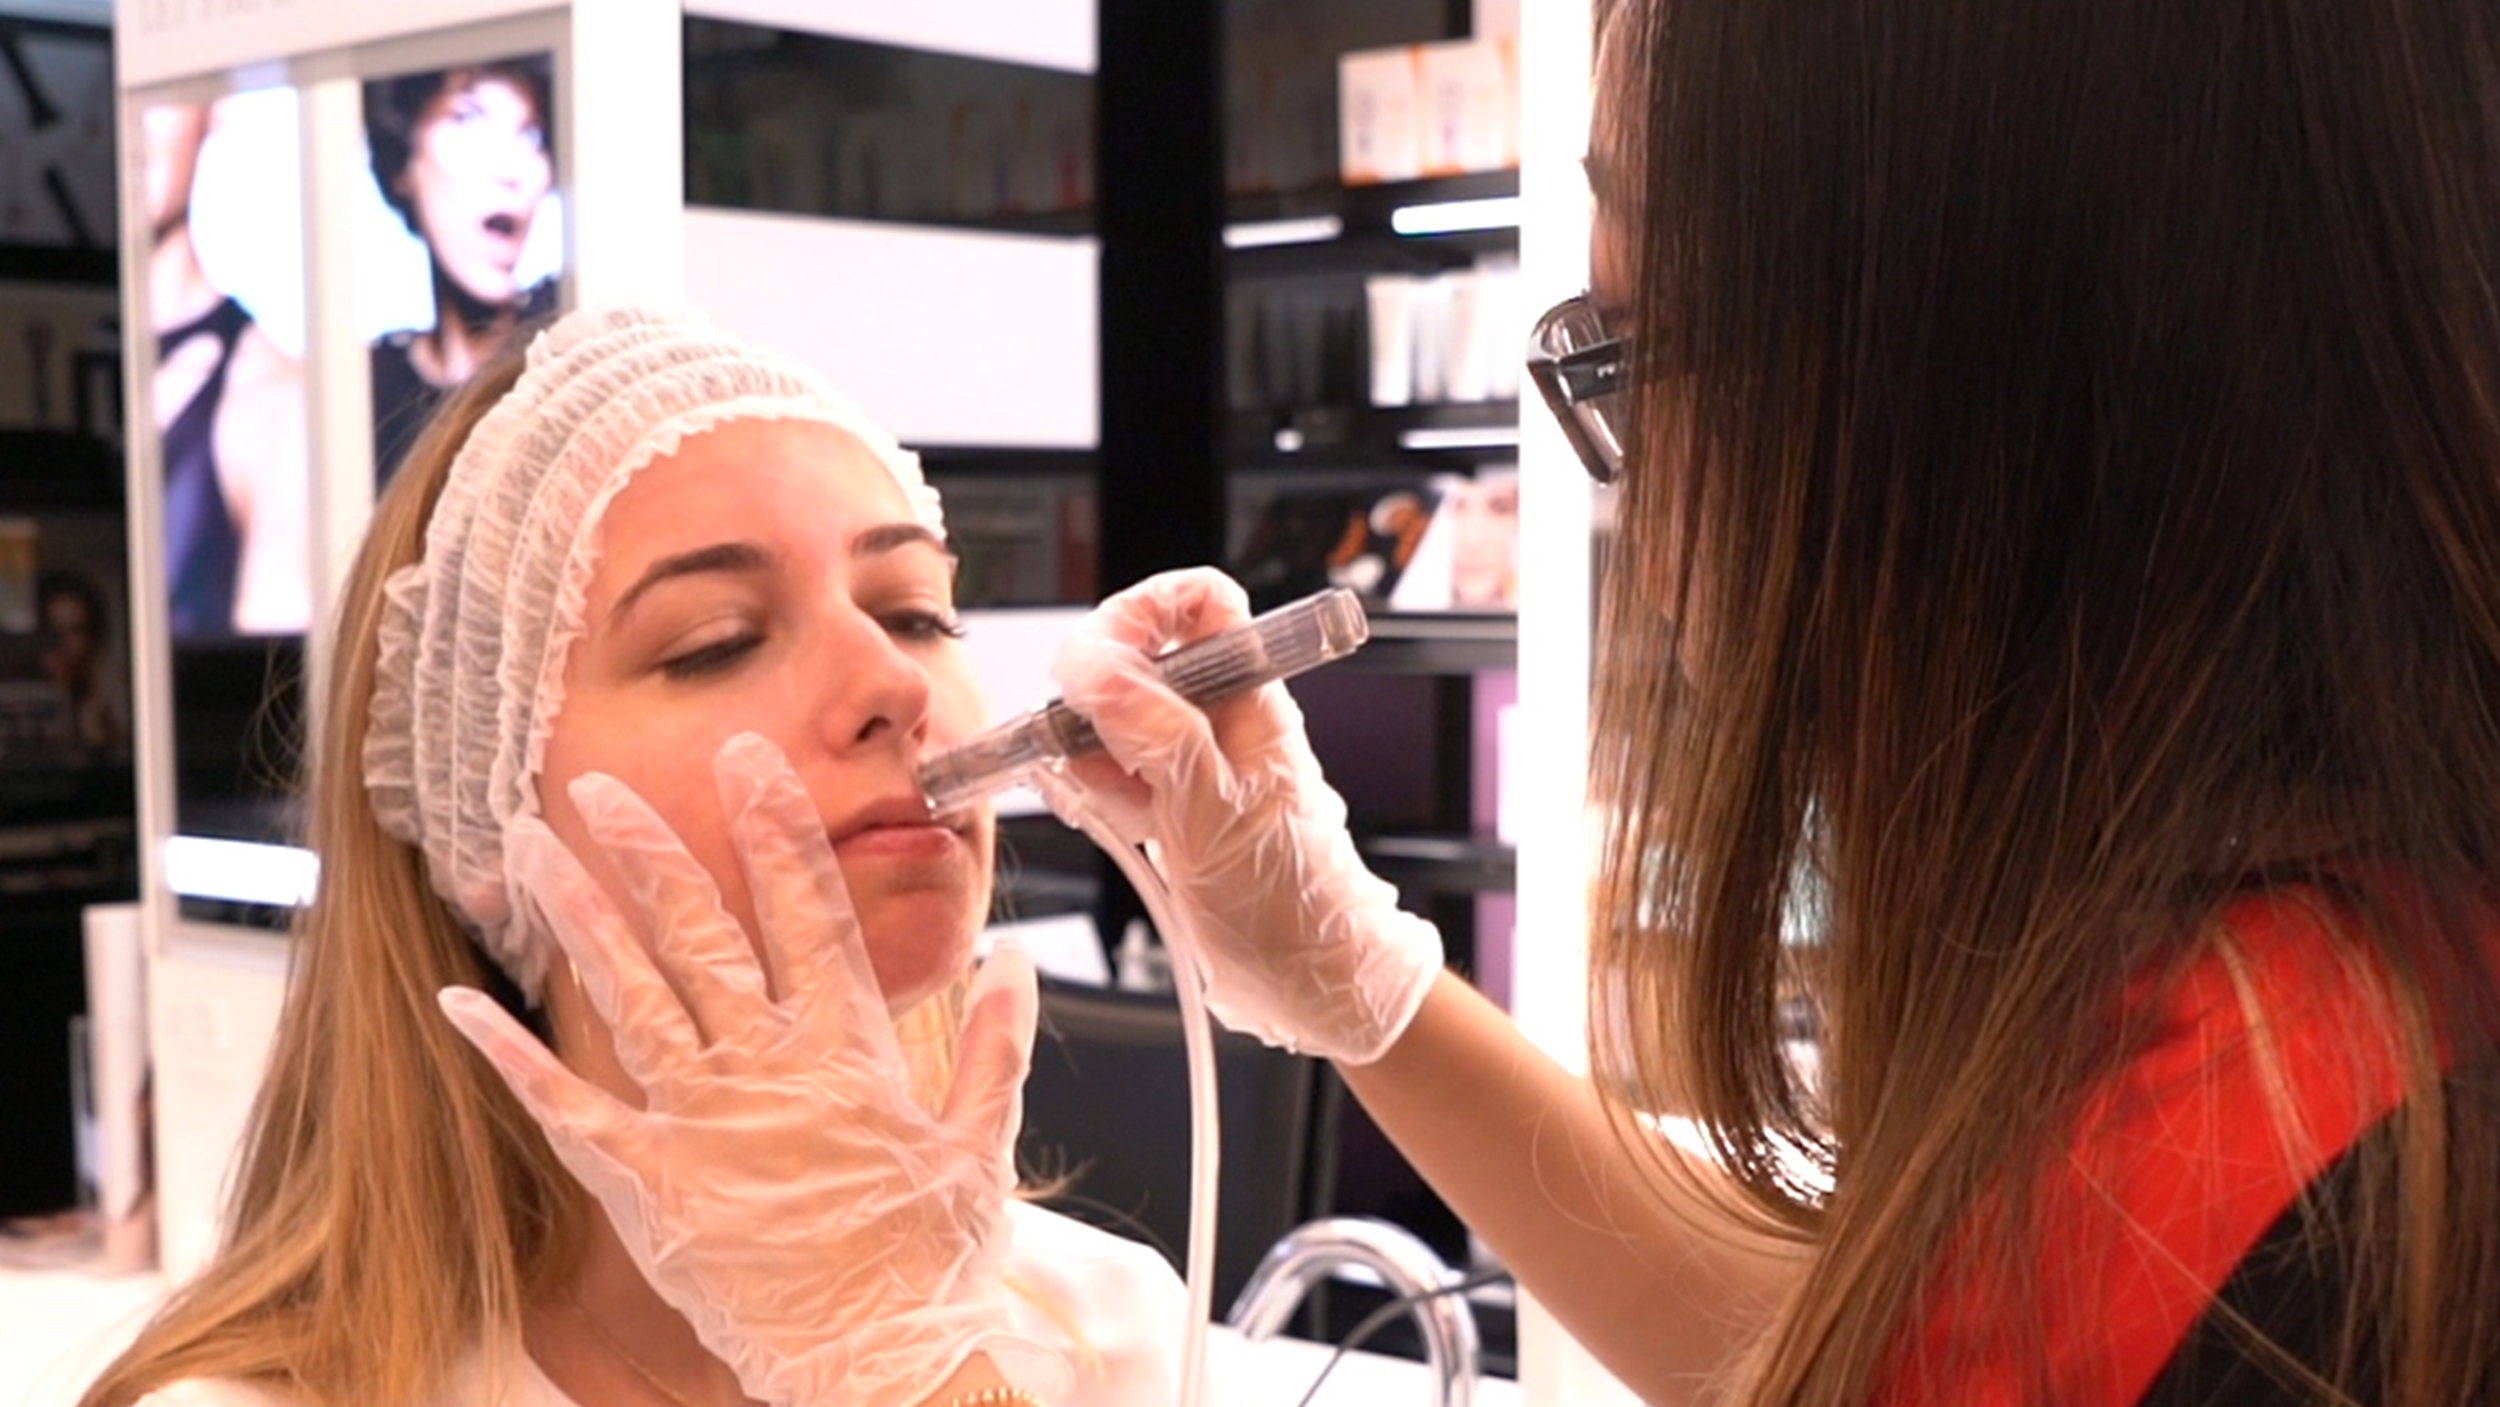 We tried Sephora's perk hydrating facial to clean out pores